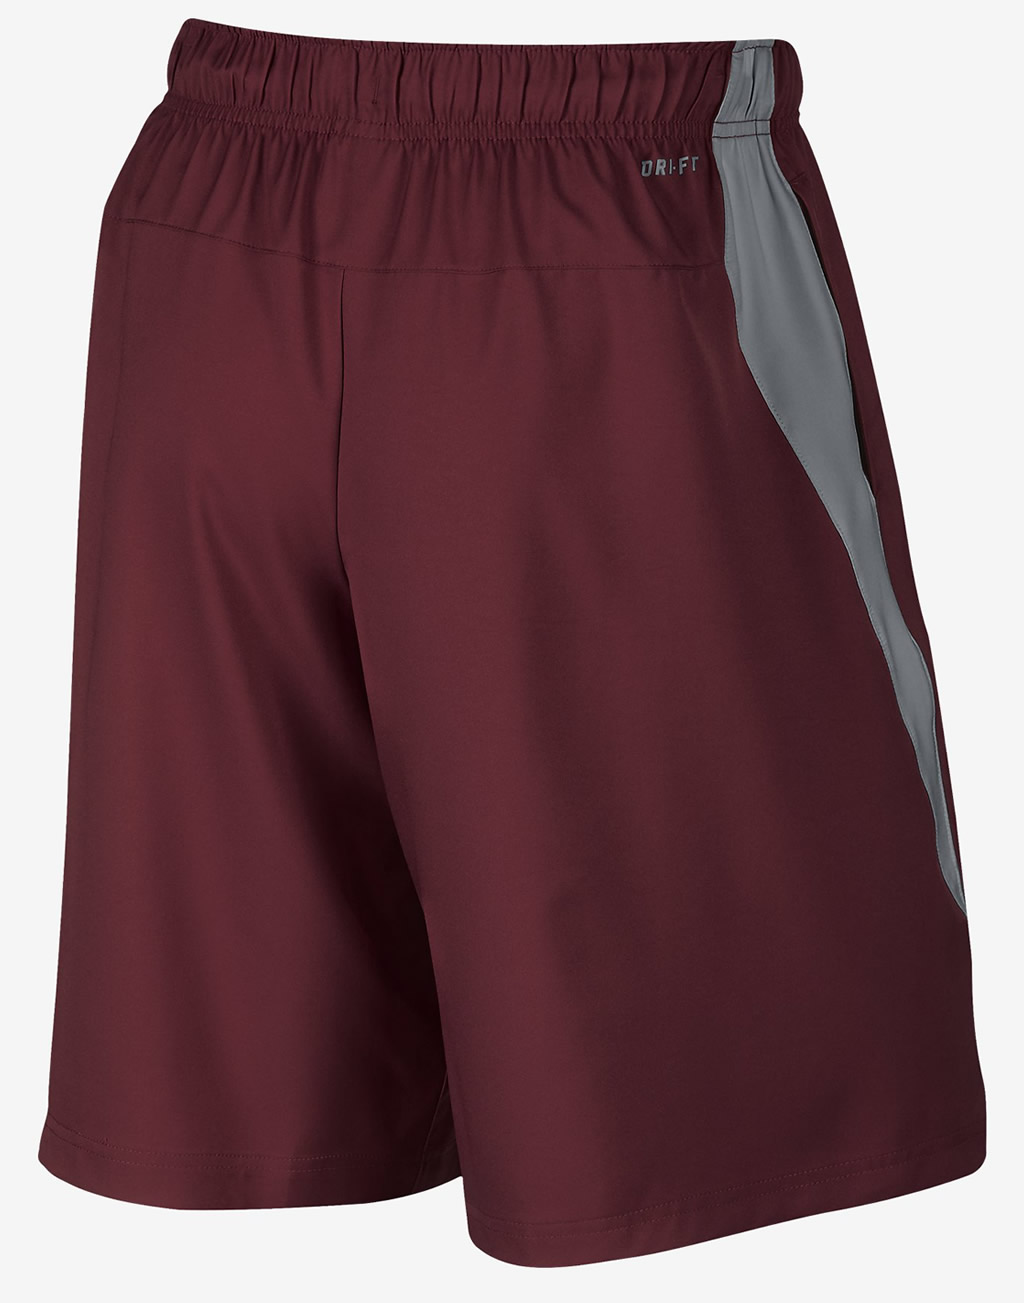 Nike Lacrosse Woven Team Red Men's Shorts